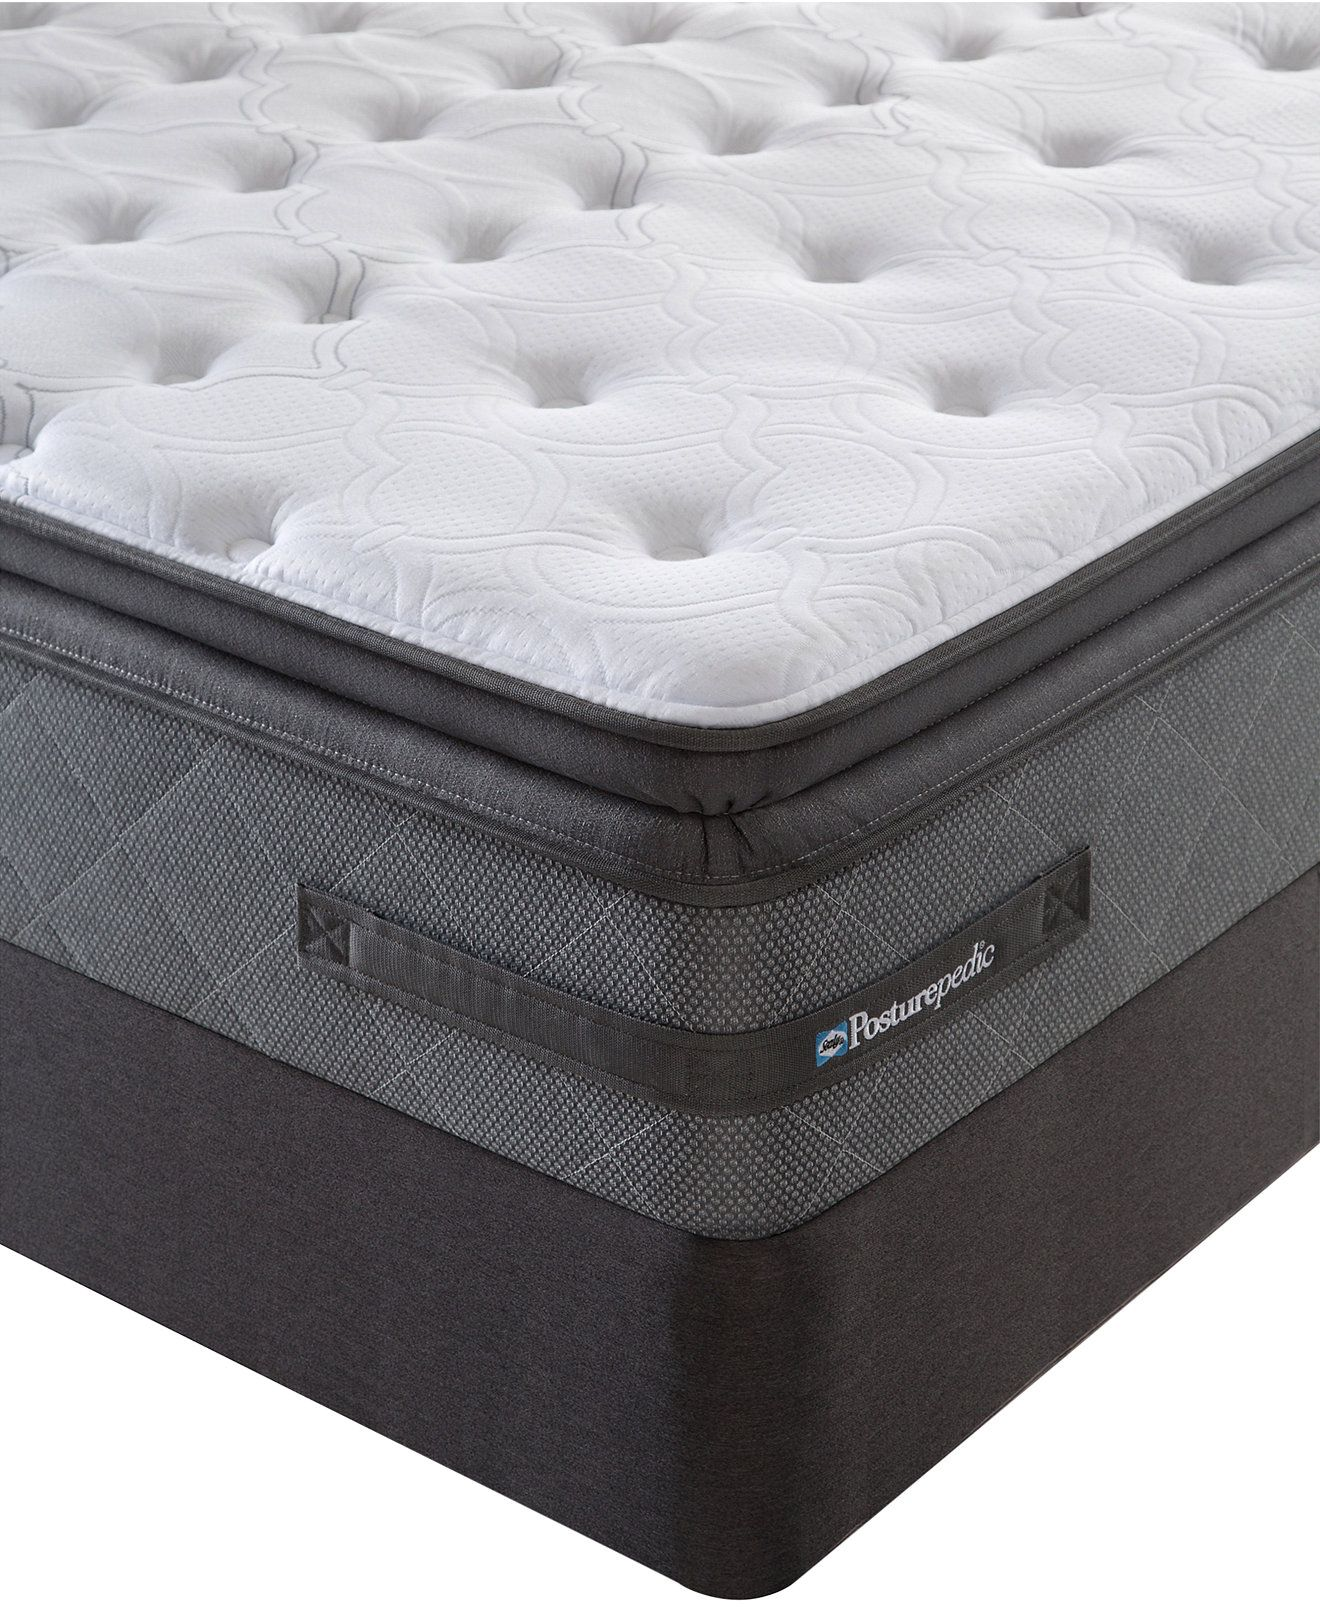 Mattress · Sealy Posturepedic Grant Park Cushion Firm Euro Pillowtop Queen  Split Mattress Set ...